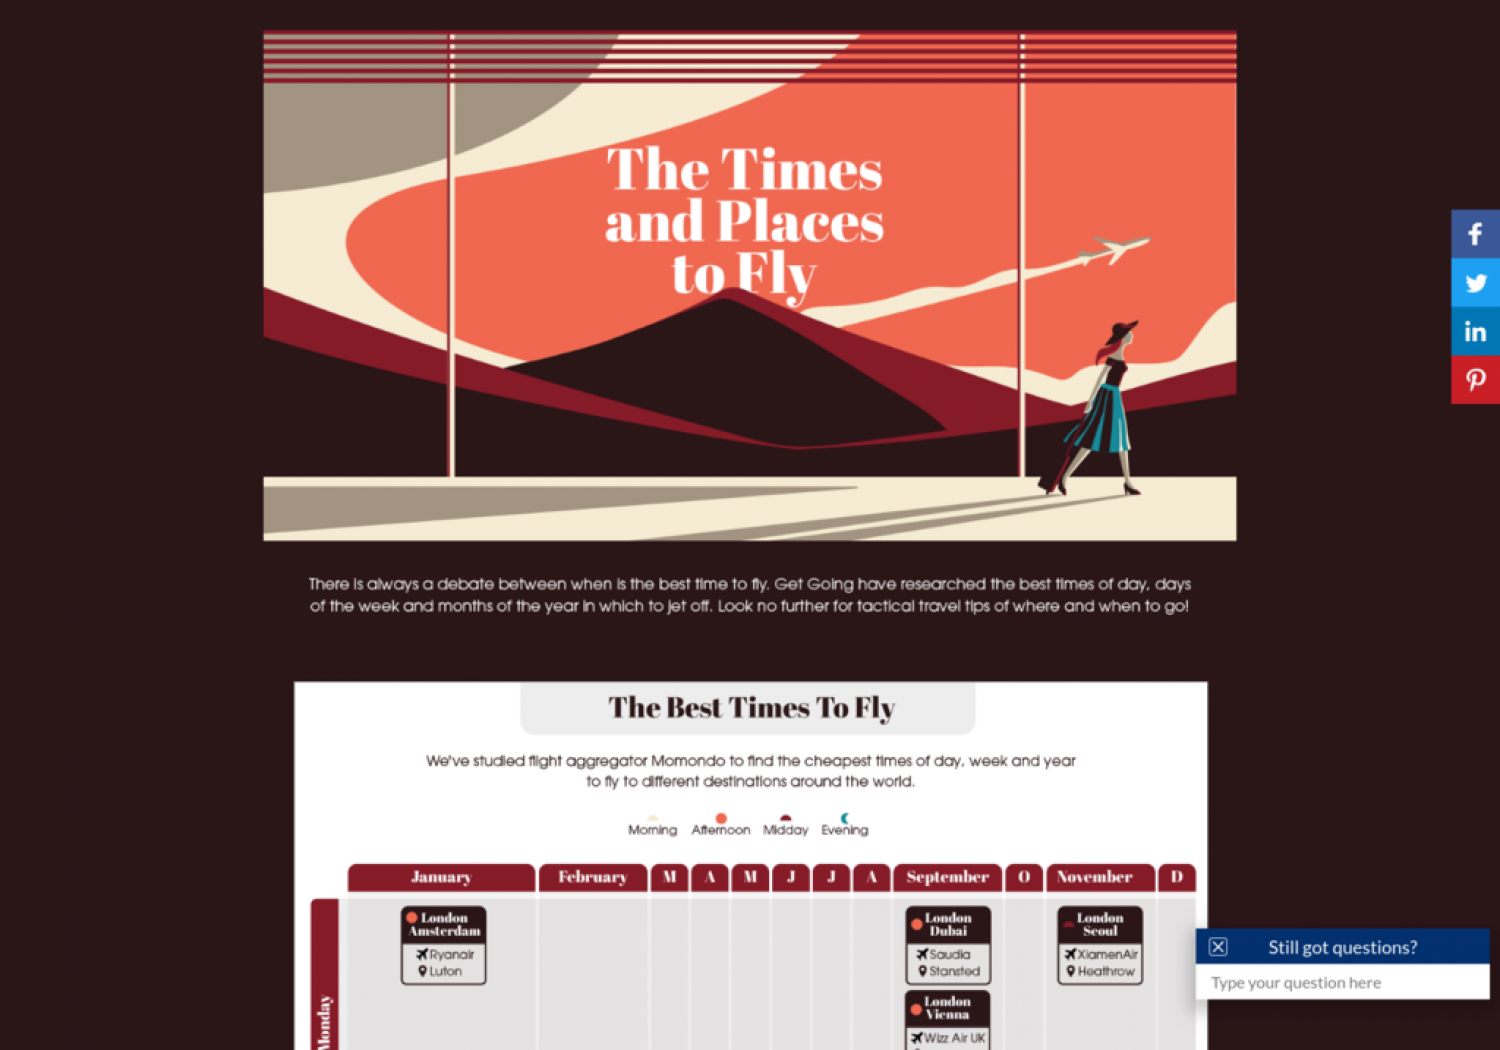 The Times and Places To Fly Infographic